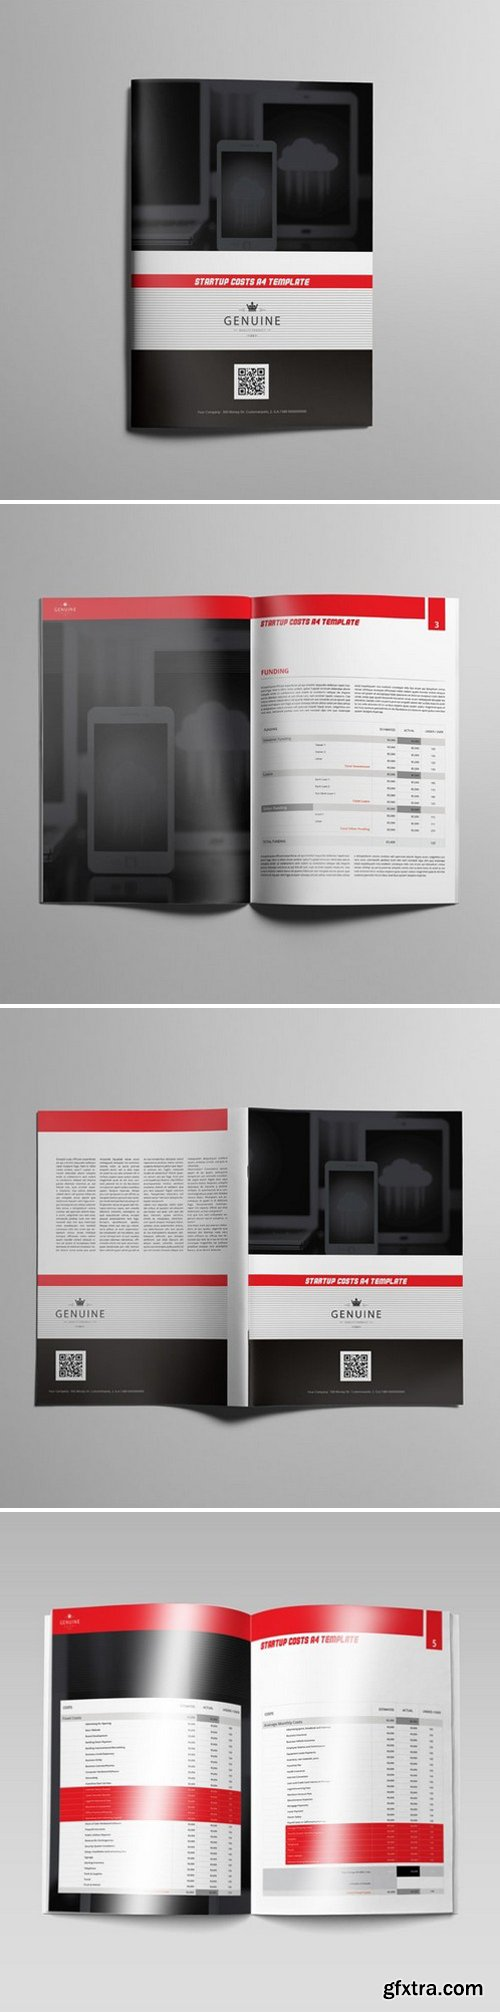 KeBoto - Startup Costs A4 Template 000175